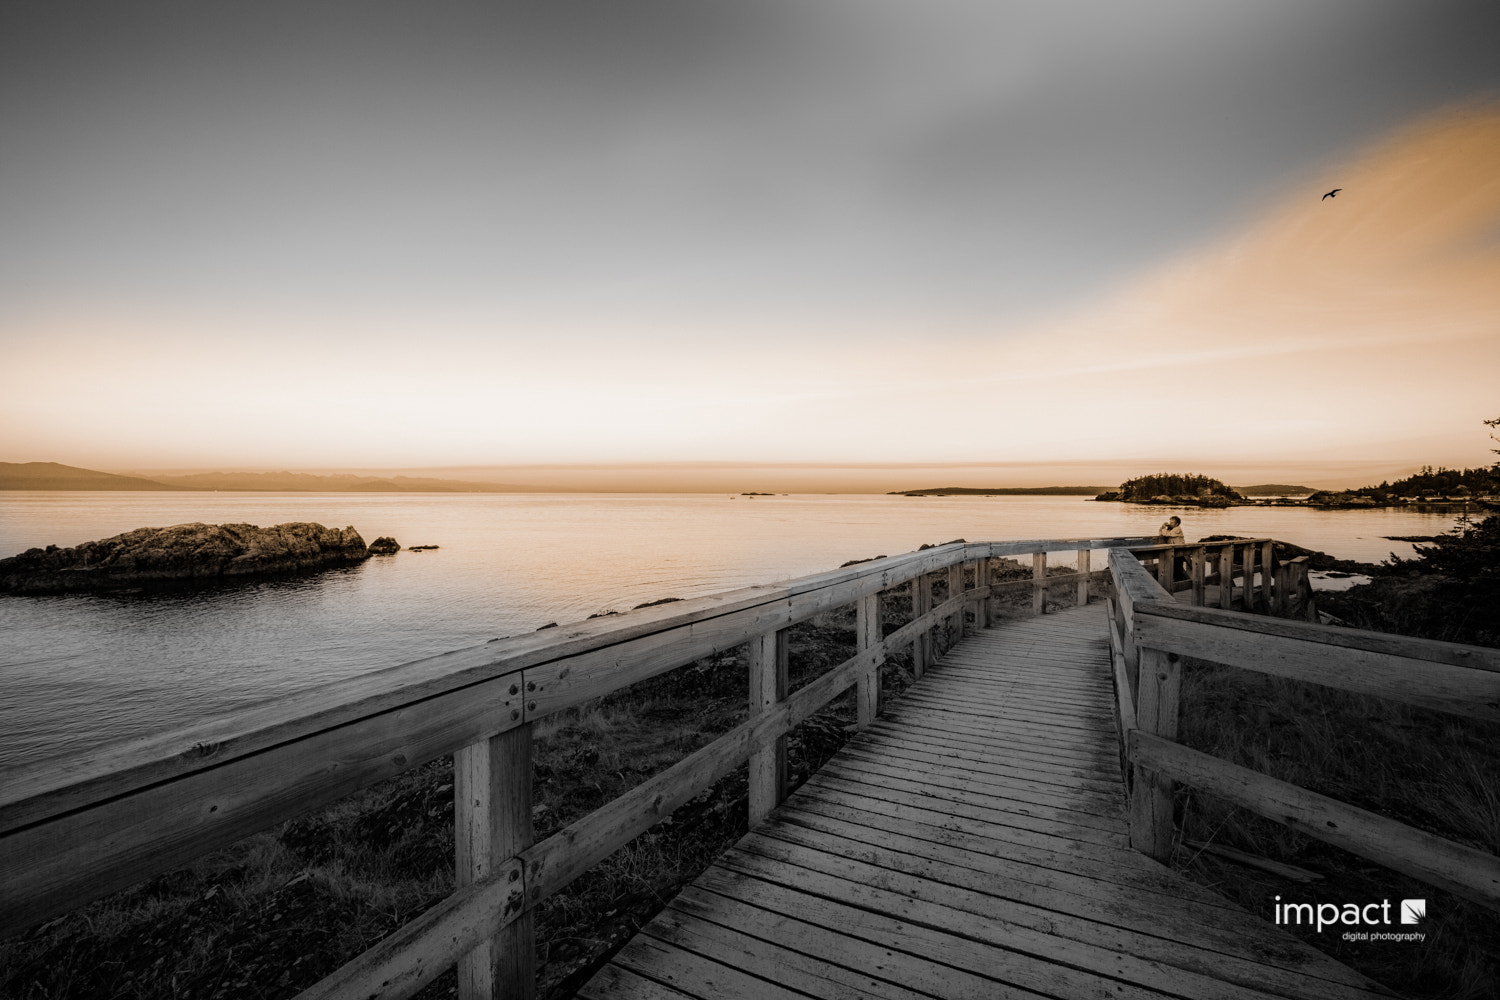 Photograph boardwalk by Mike Thompson on 500px